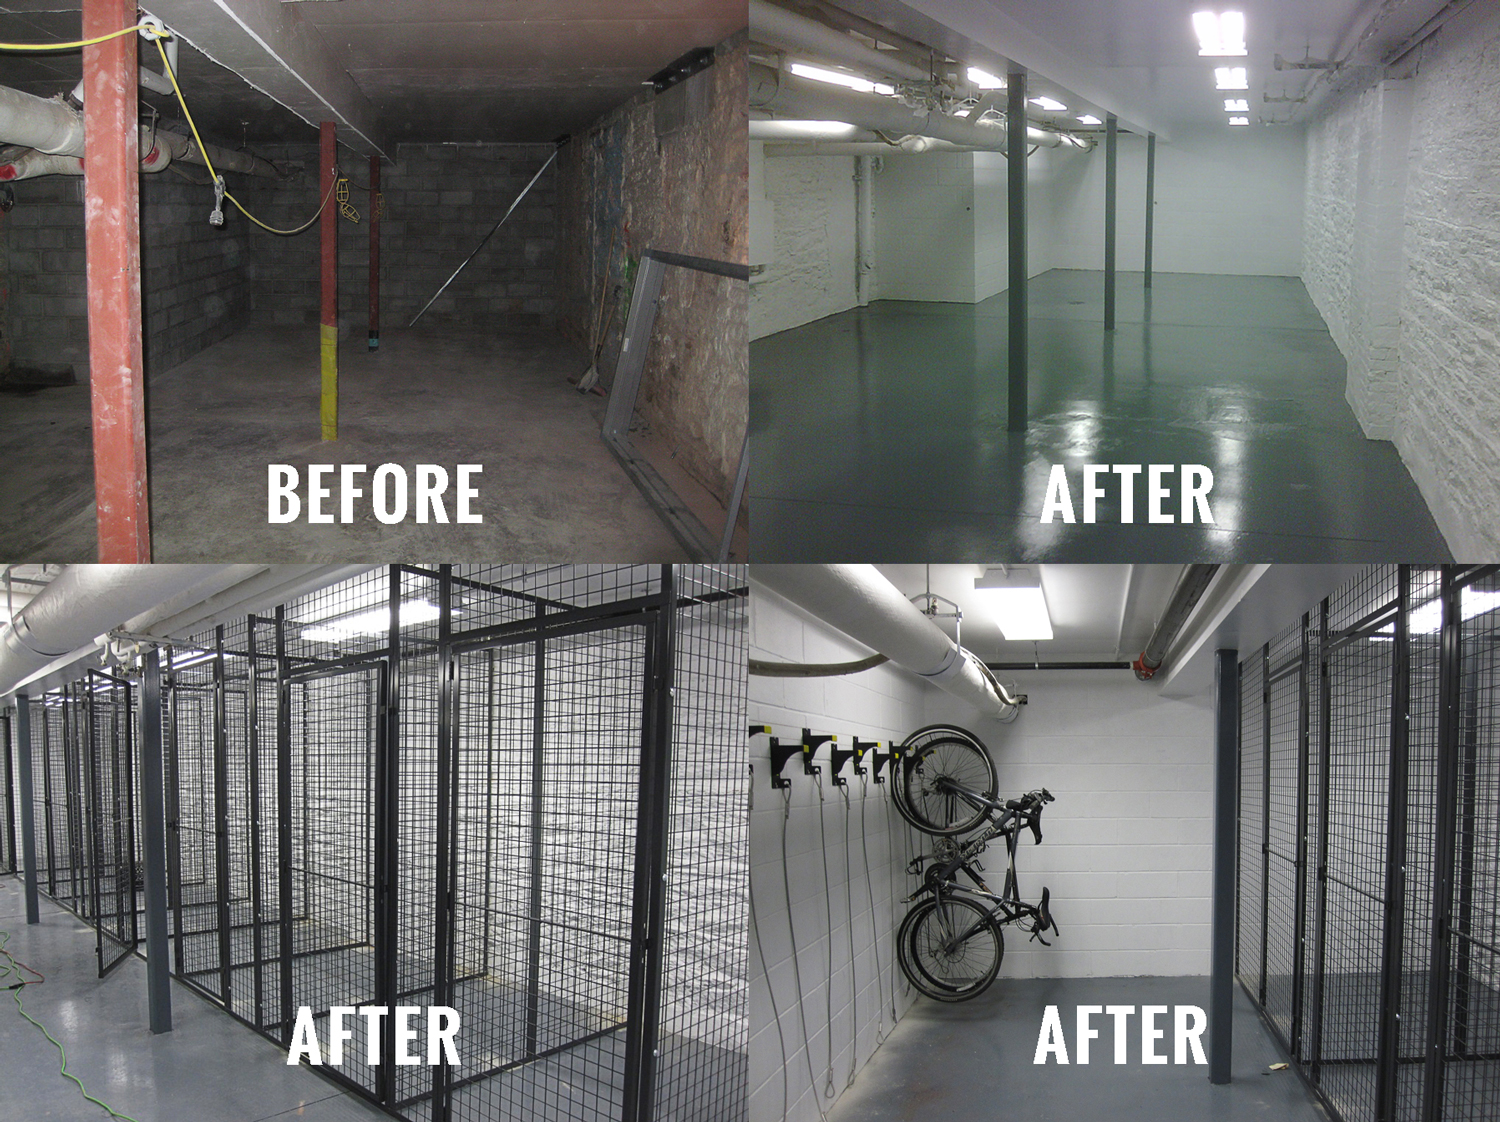 ... Giant Industrial Installations Can Literally Transform Your Existing  Building Storage Areas Into Clean, Organized, ...